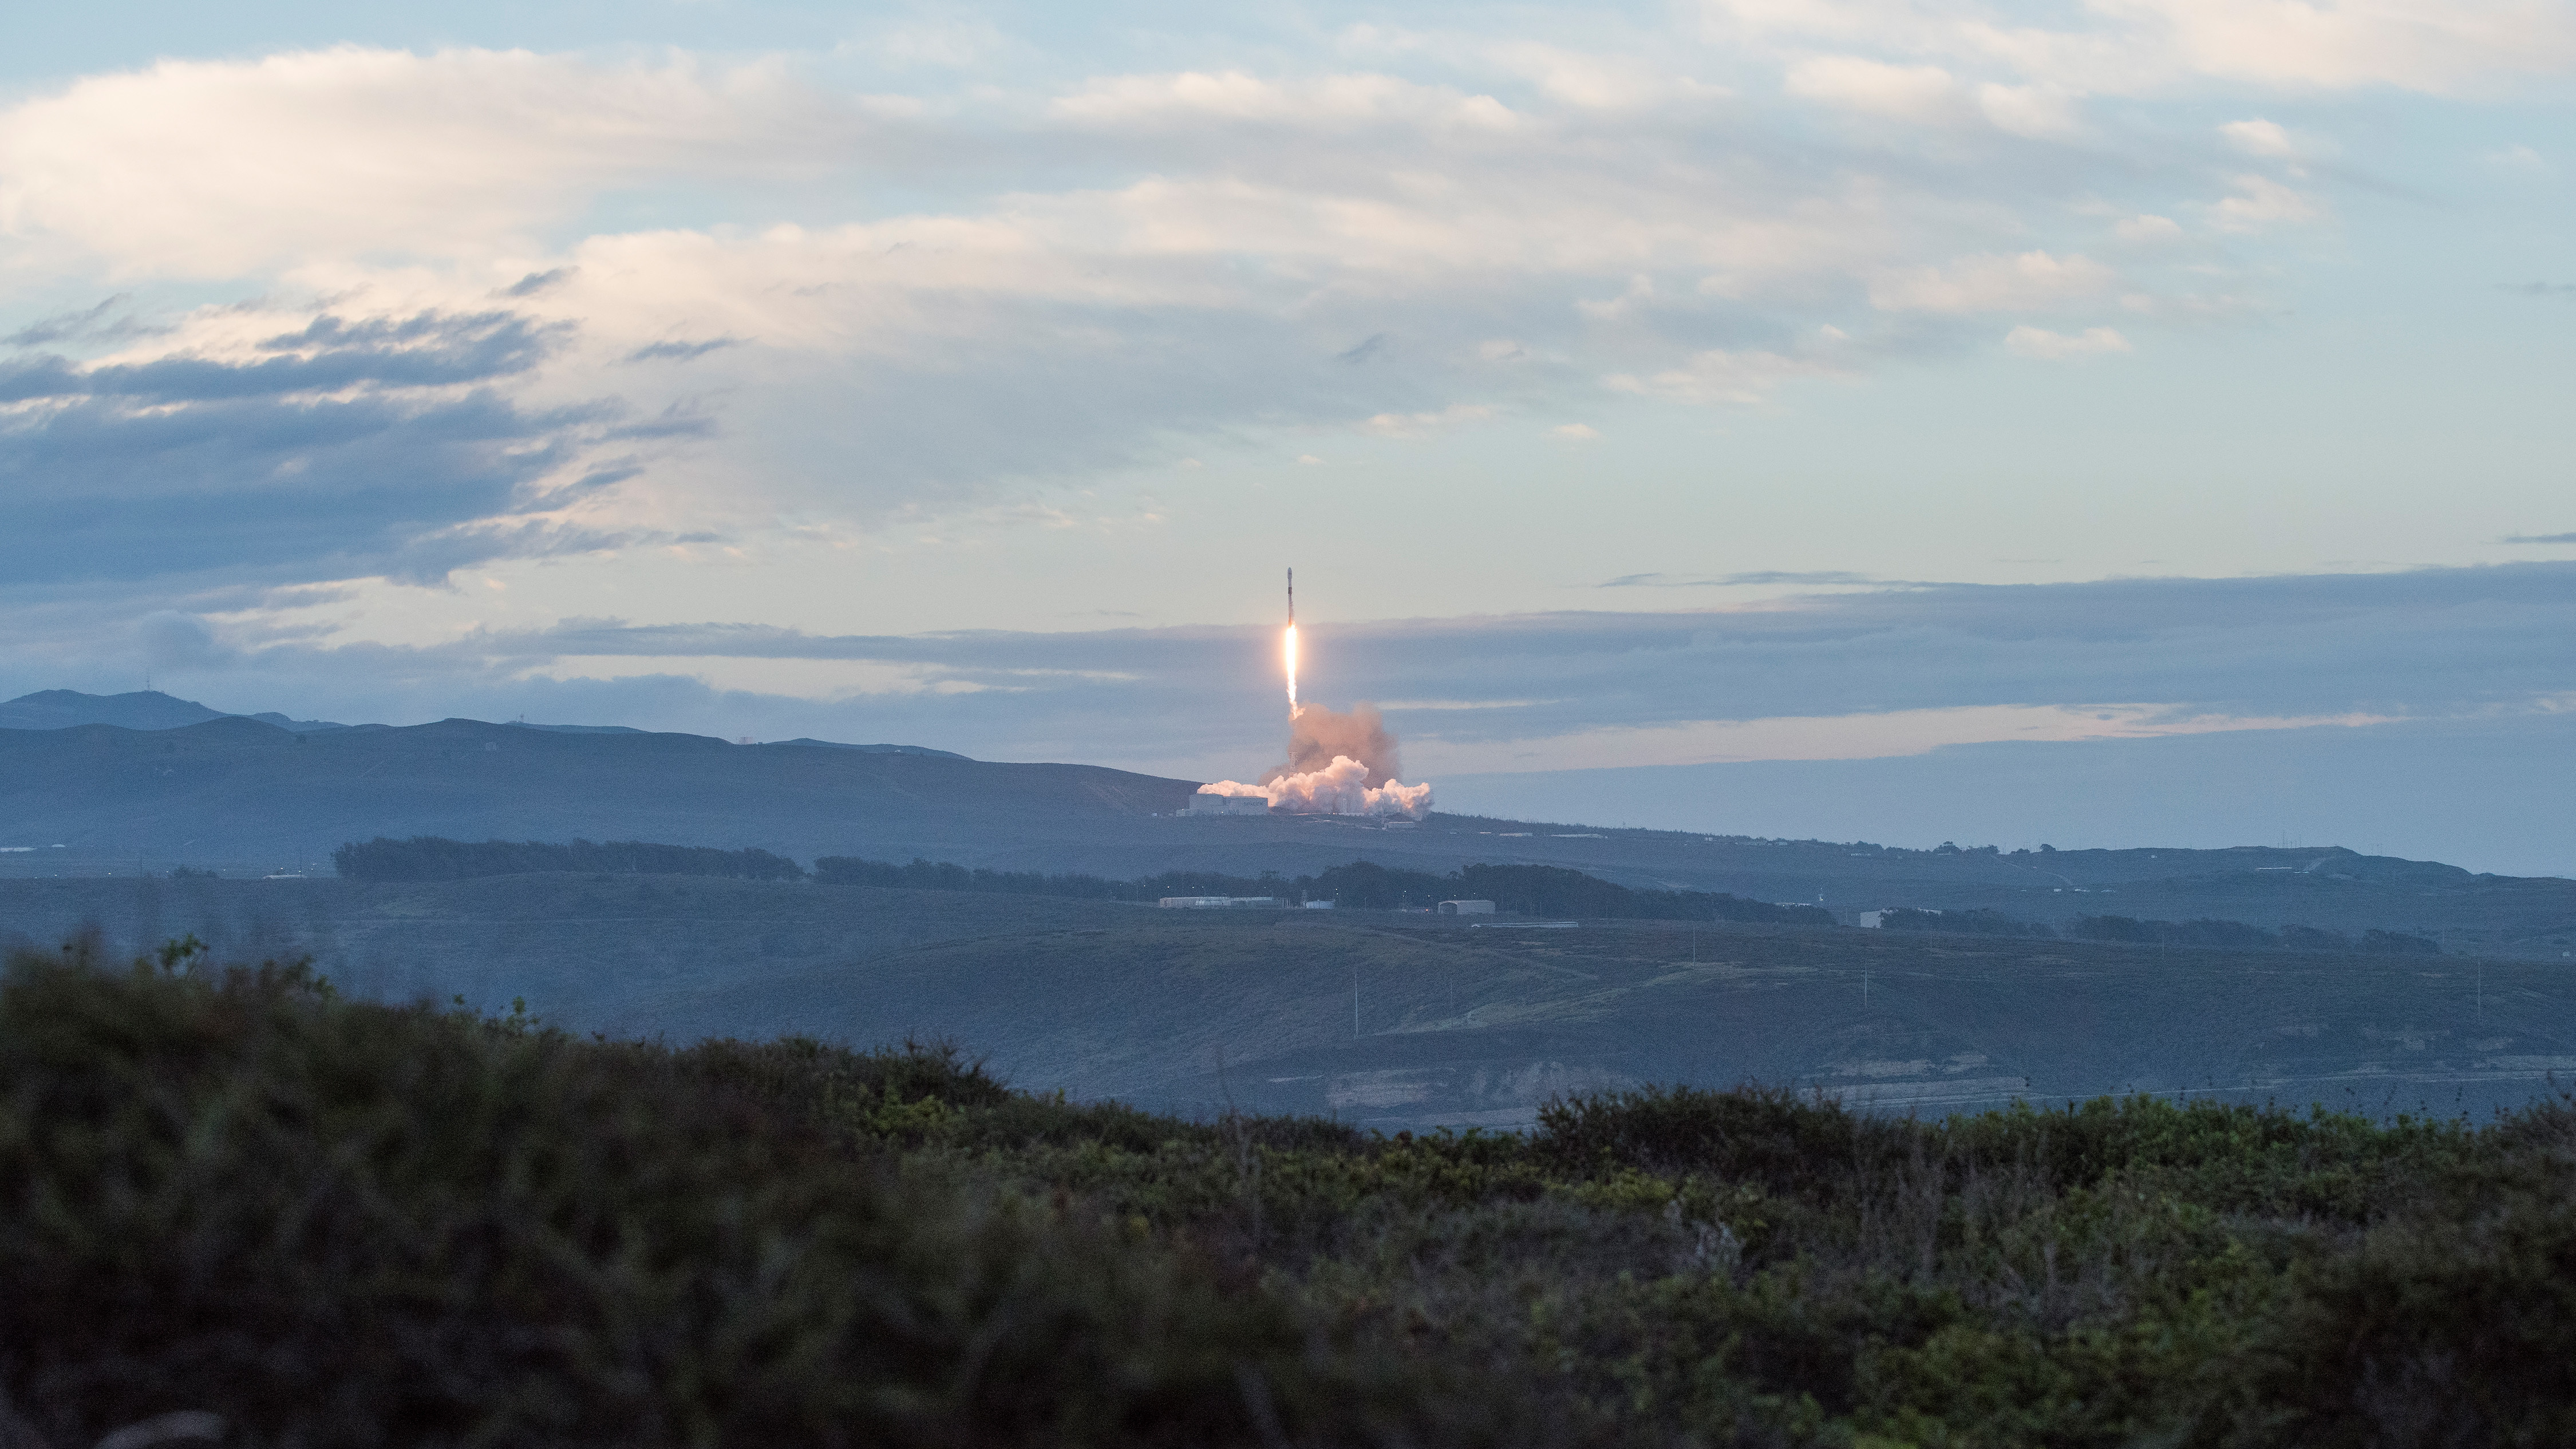 A SpaceX Falcon 9 rocket, carrying the final Iridium mission this year, launches from Space Launch Complex-4E at Vandenberg Air Force Base, CA on Jan. 11, 2018 at 7:31 a.m. PST. (Senior Airman Clayton Wear/U.S. Air Force)